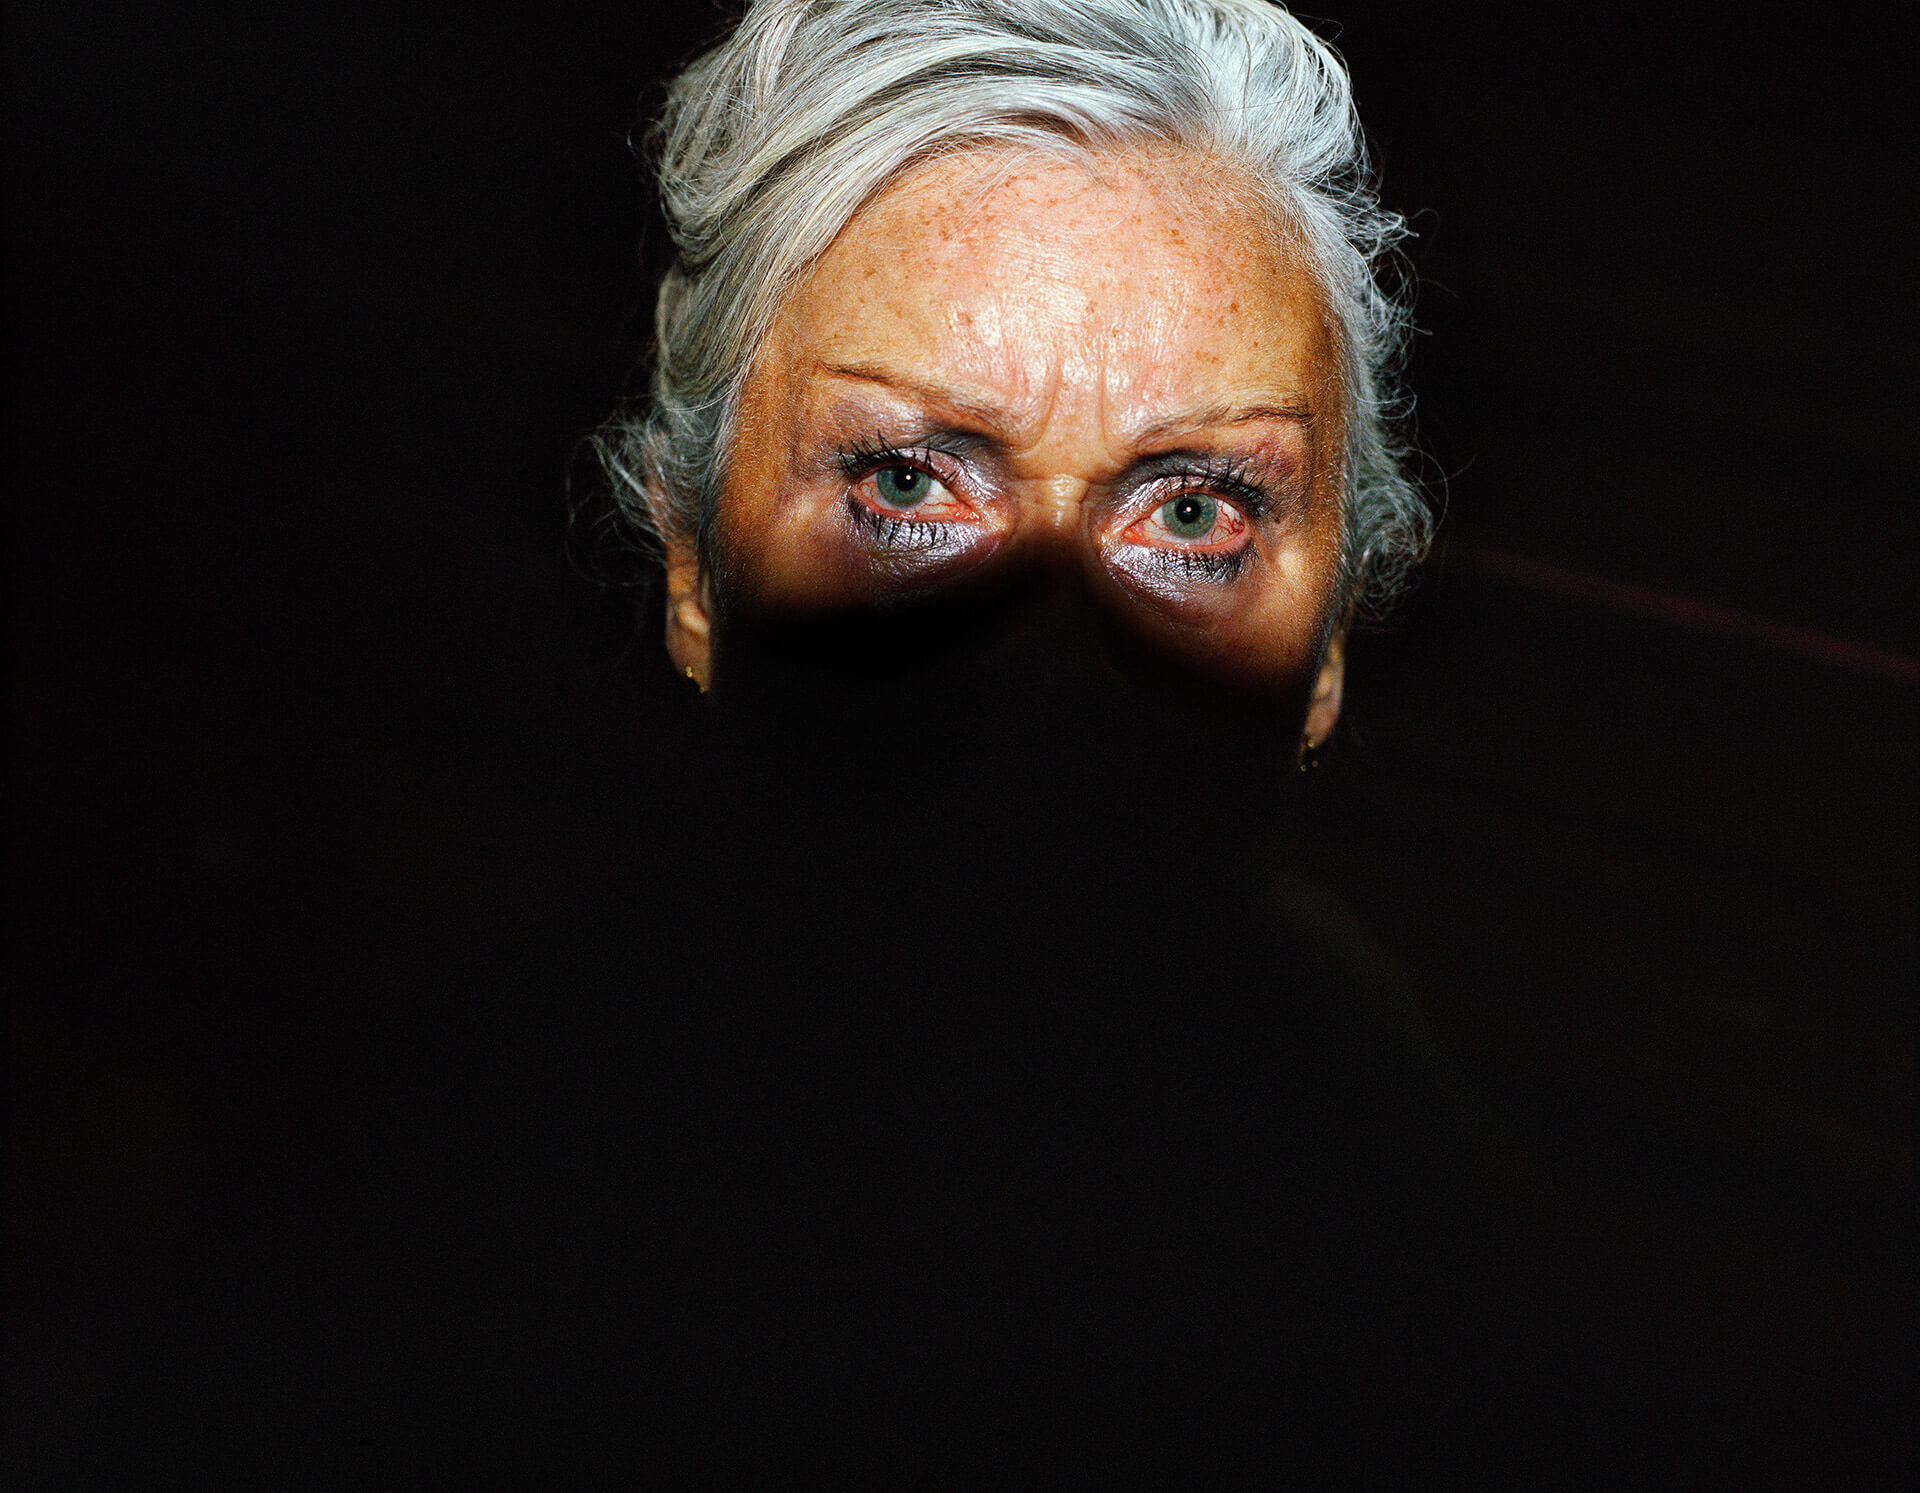 Piotr Karpinski the south west collective of photography women with light on her face